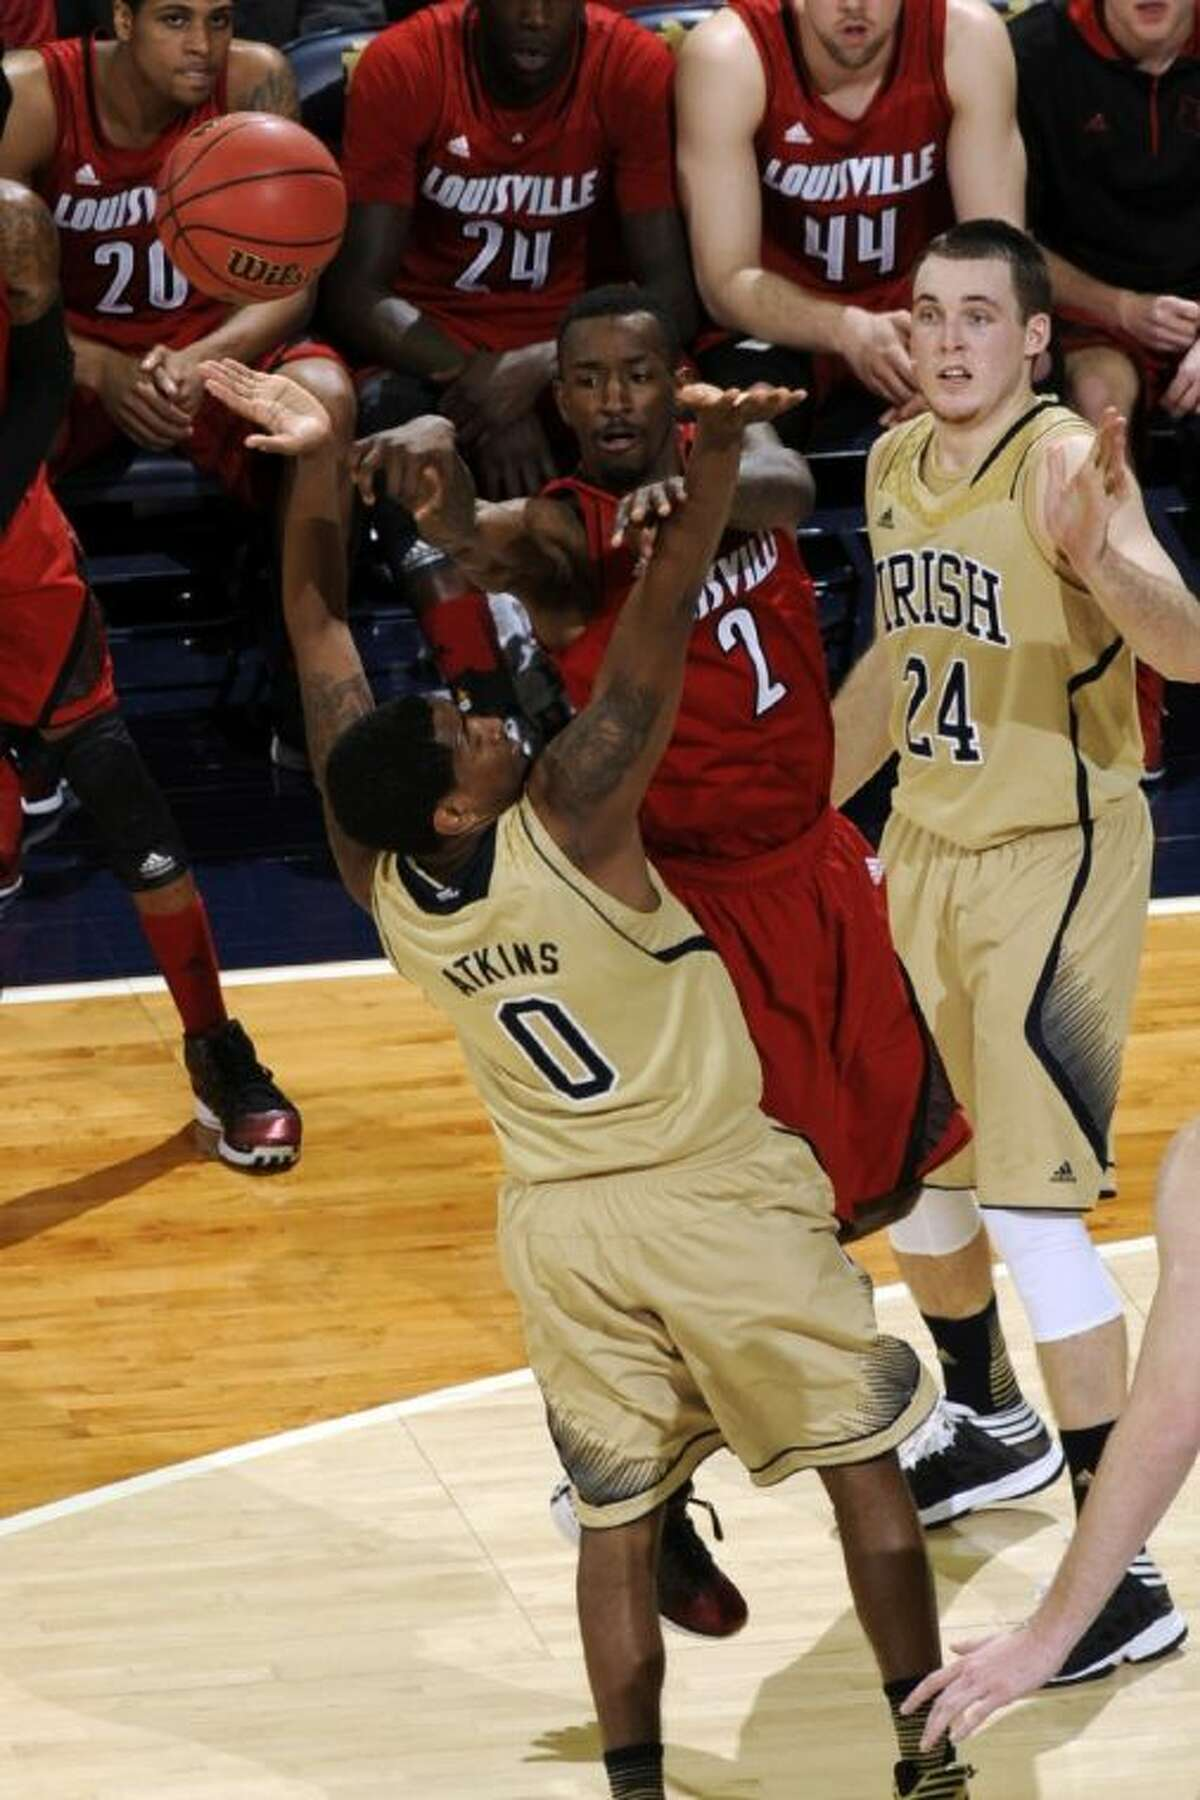 Louisville guard Russ Smith, middle, is trapped as he passes against Notre Dame's Eric Atkins, left, and Pat Connaughton. The Irish won 104-101 in five overtimes, the longest regular-season game in Big East history.